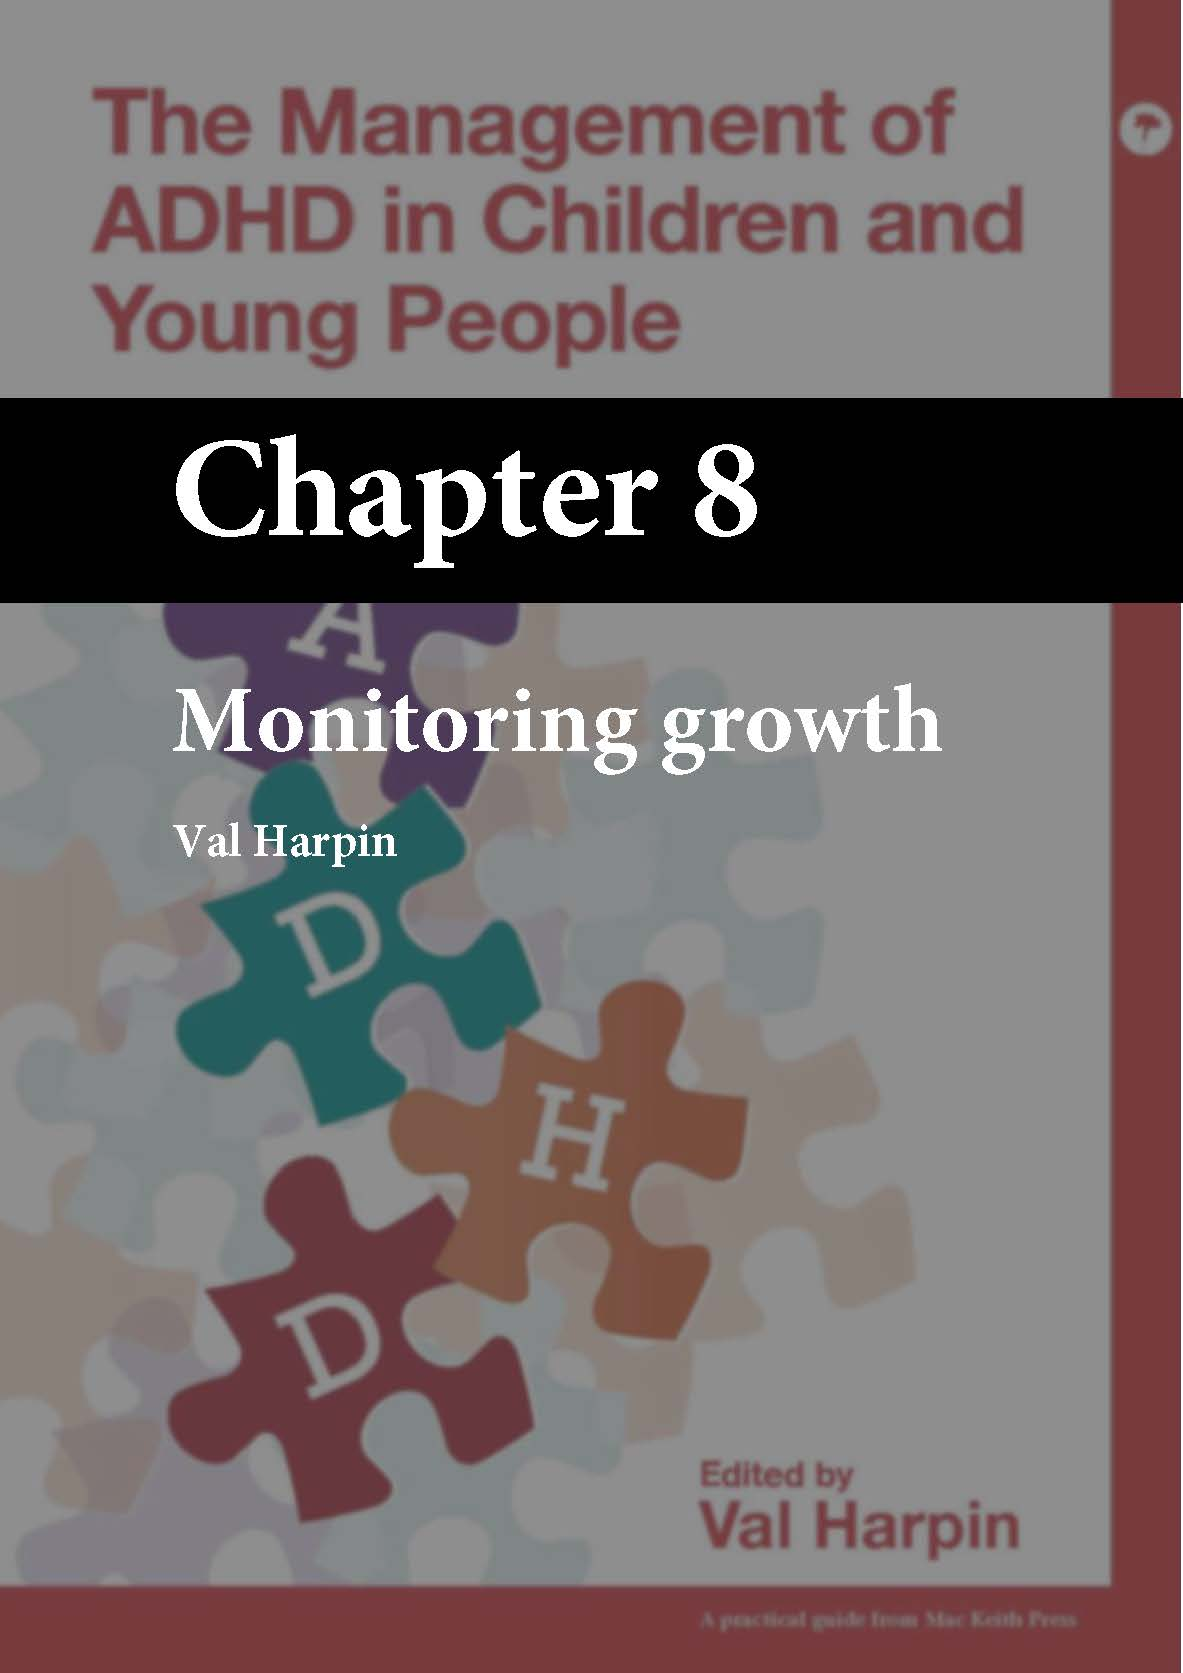 The Management of ADHD in Children and Young People, Harpin, Chapter 8 cover